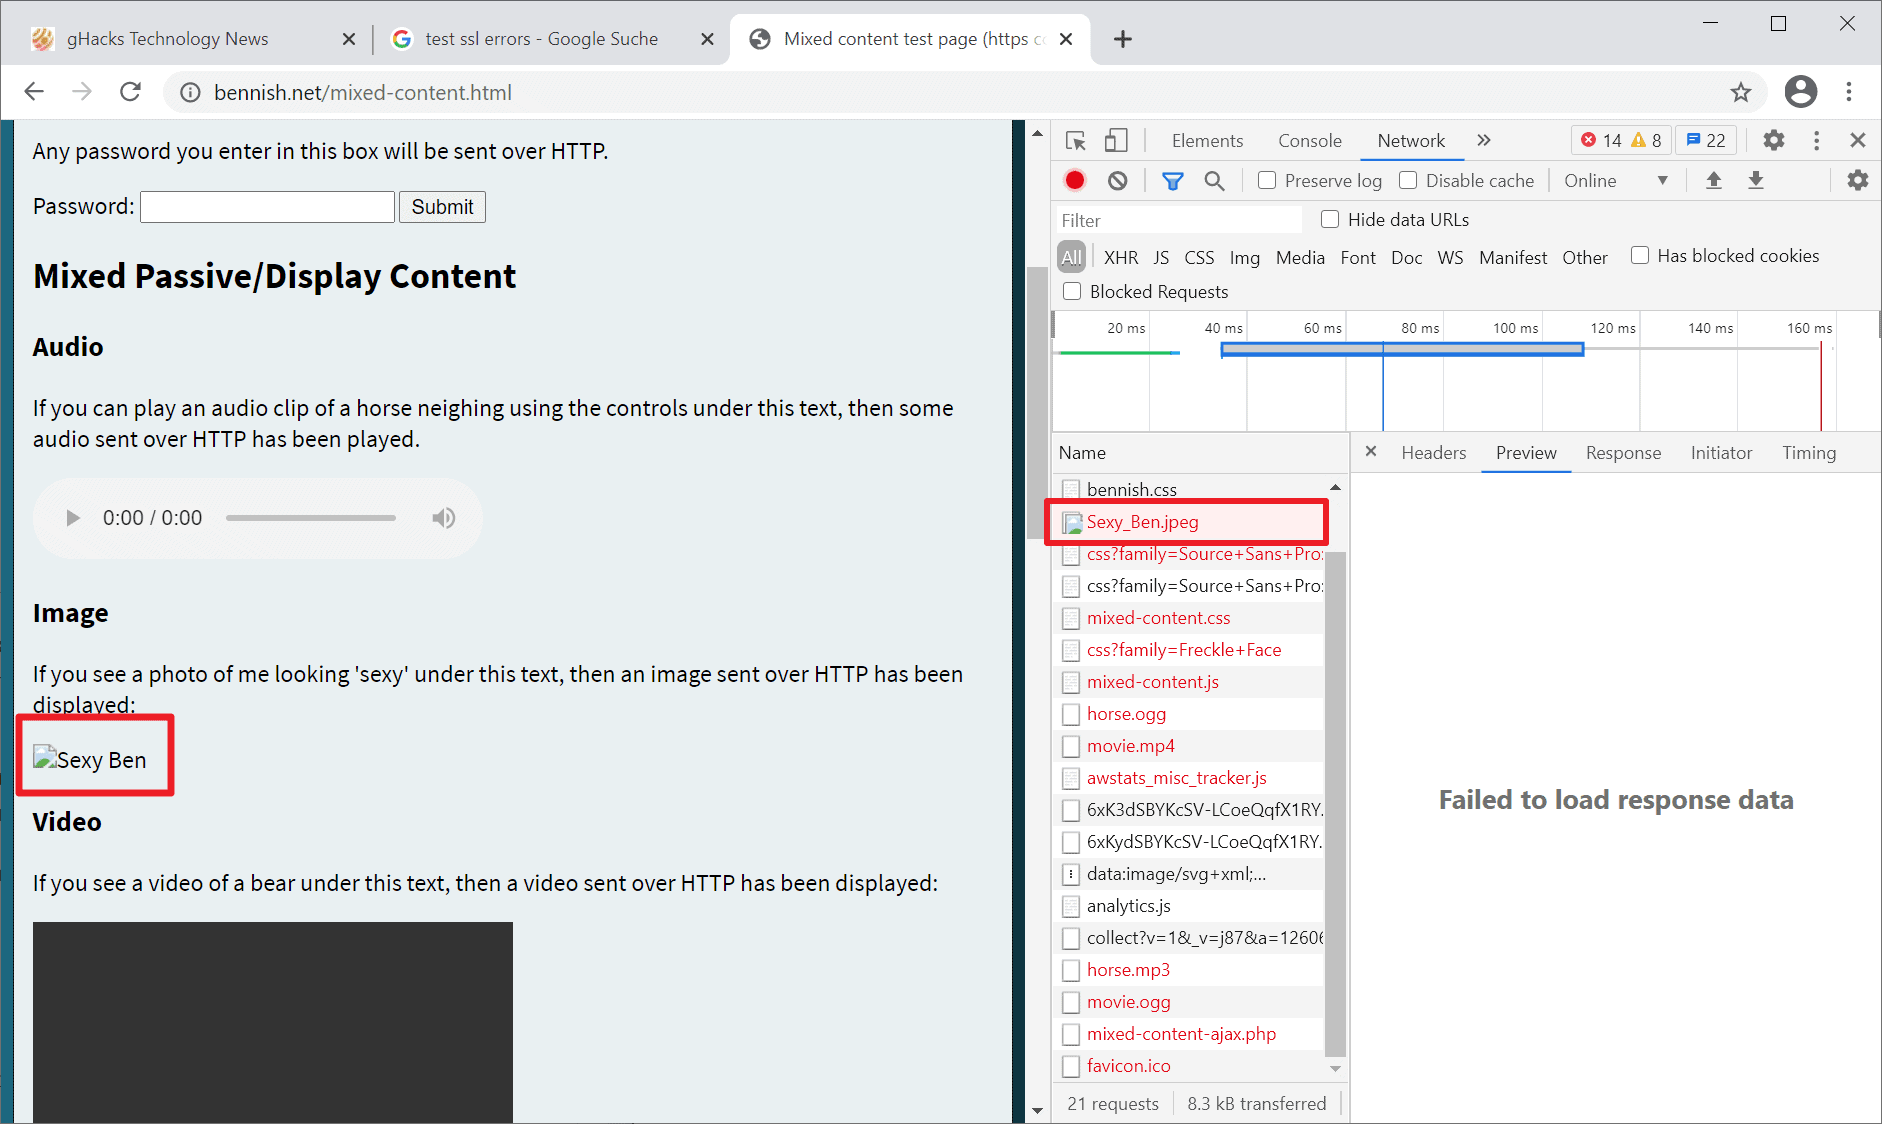 chrome insecure images